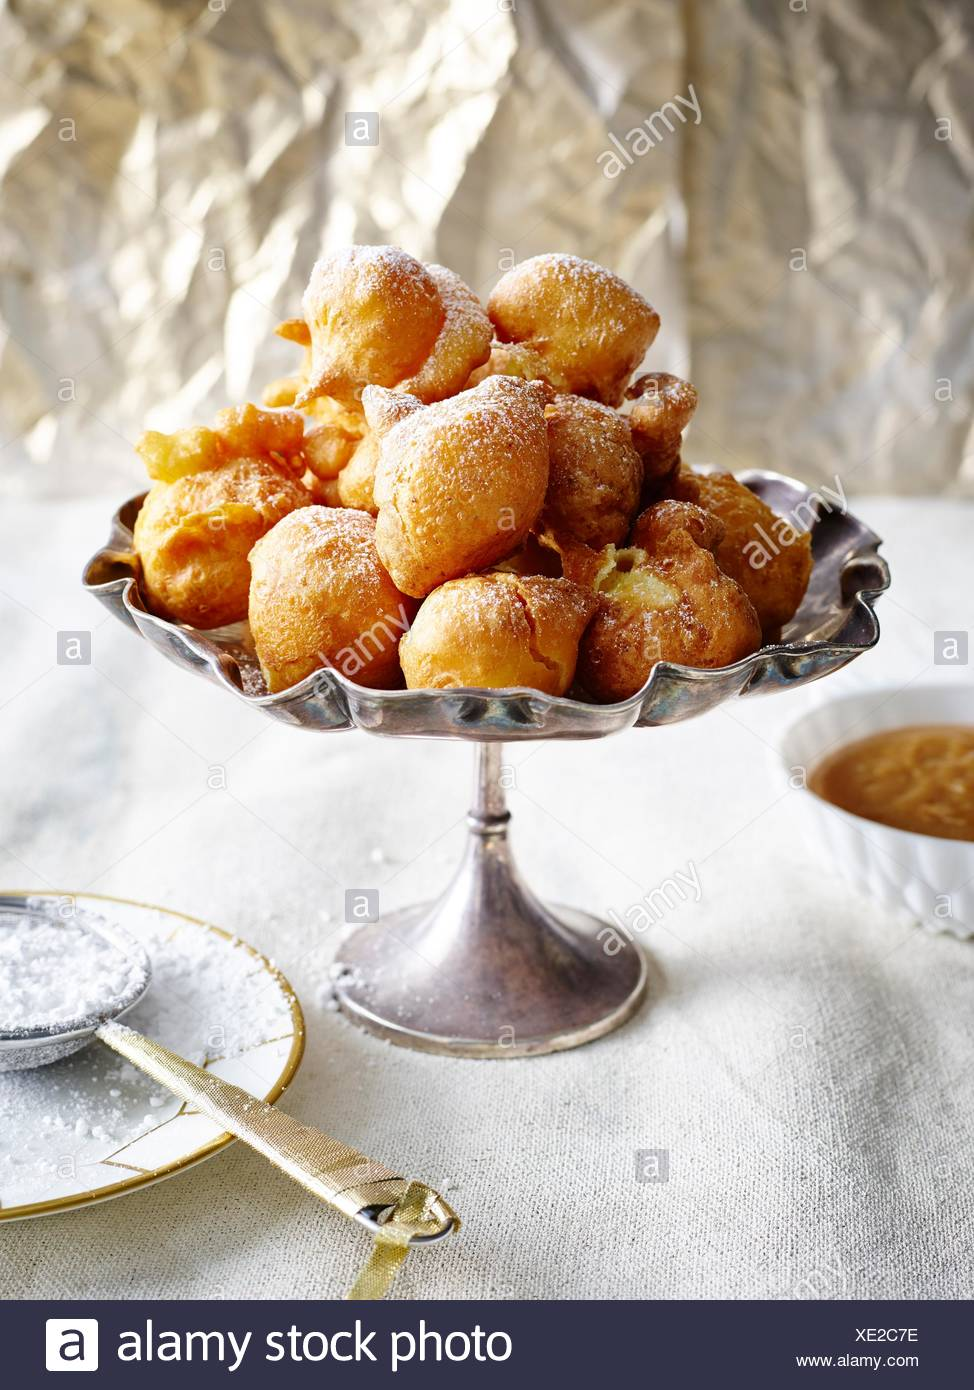 Bunuelos piled into silver serving dish dusted with icing sugar - Stock Image